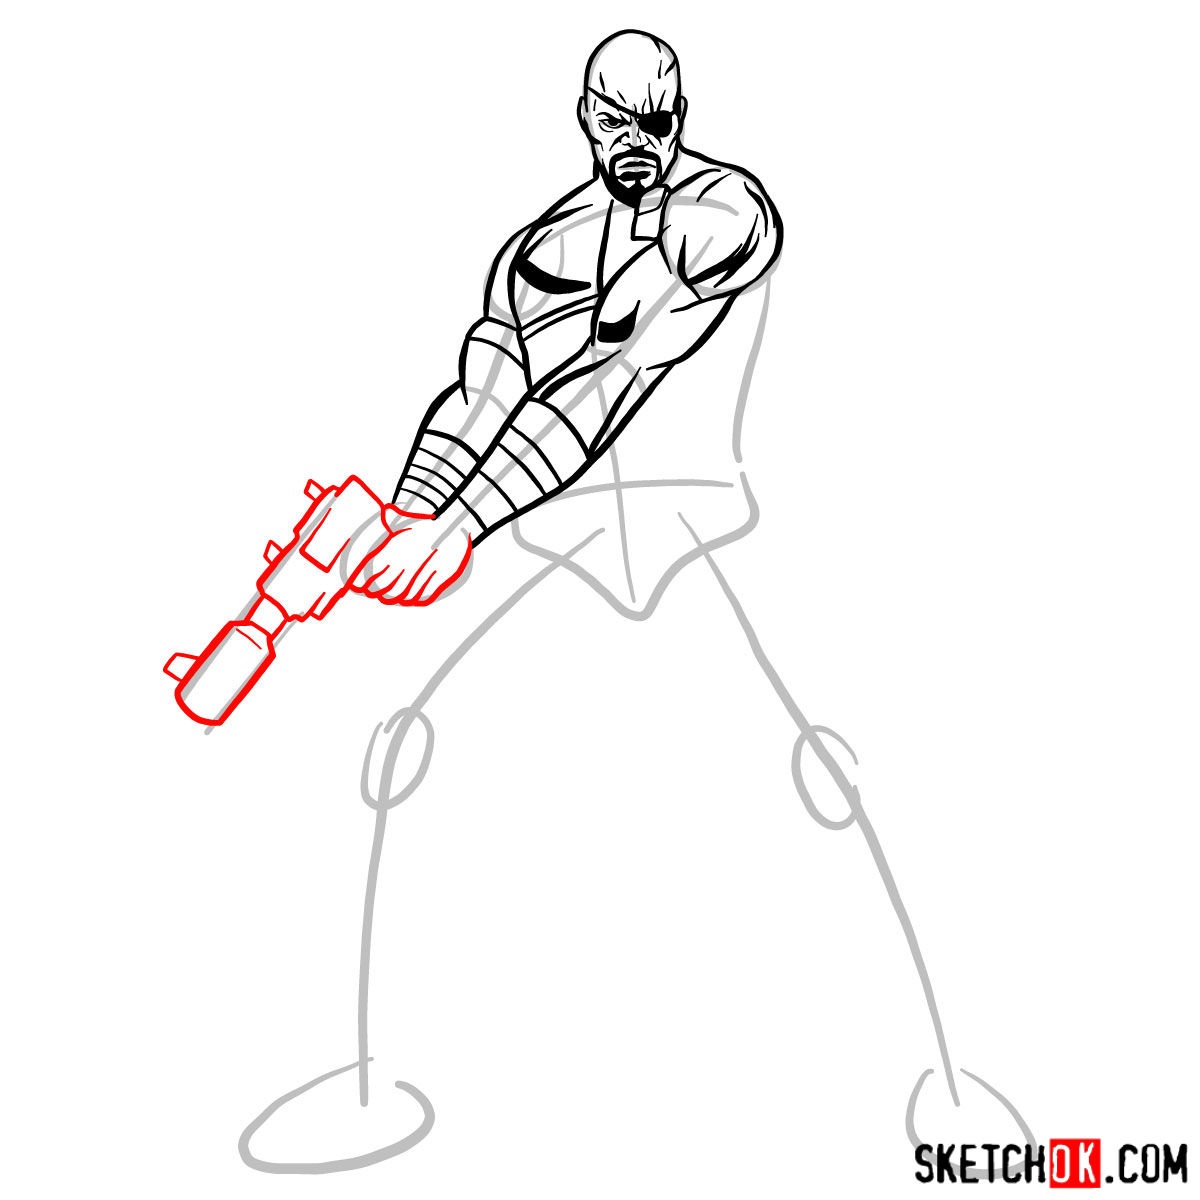 How to draw Nick Fury from the Avengers - step 09